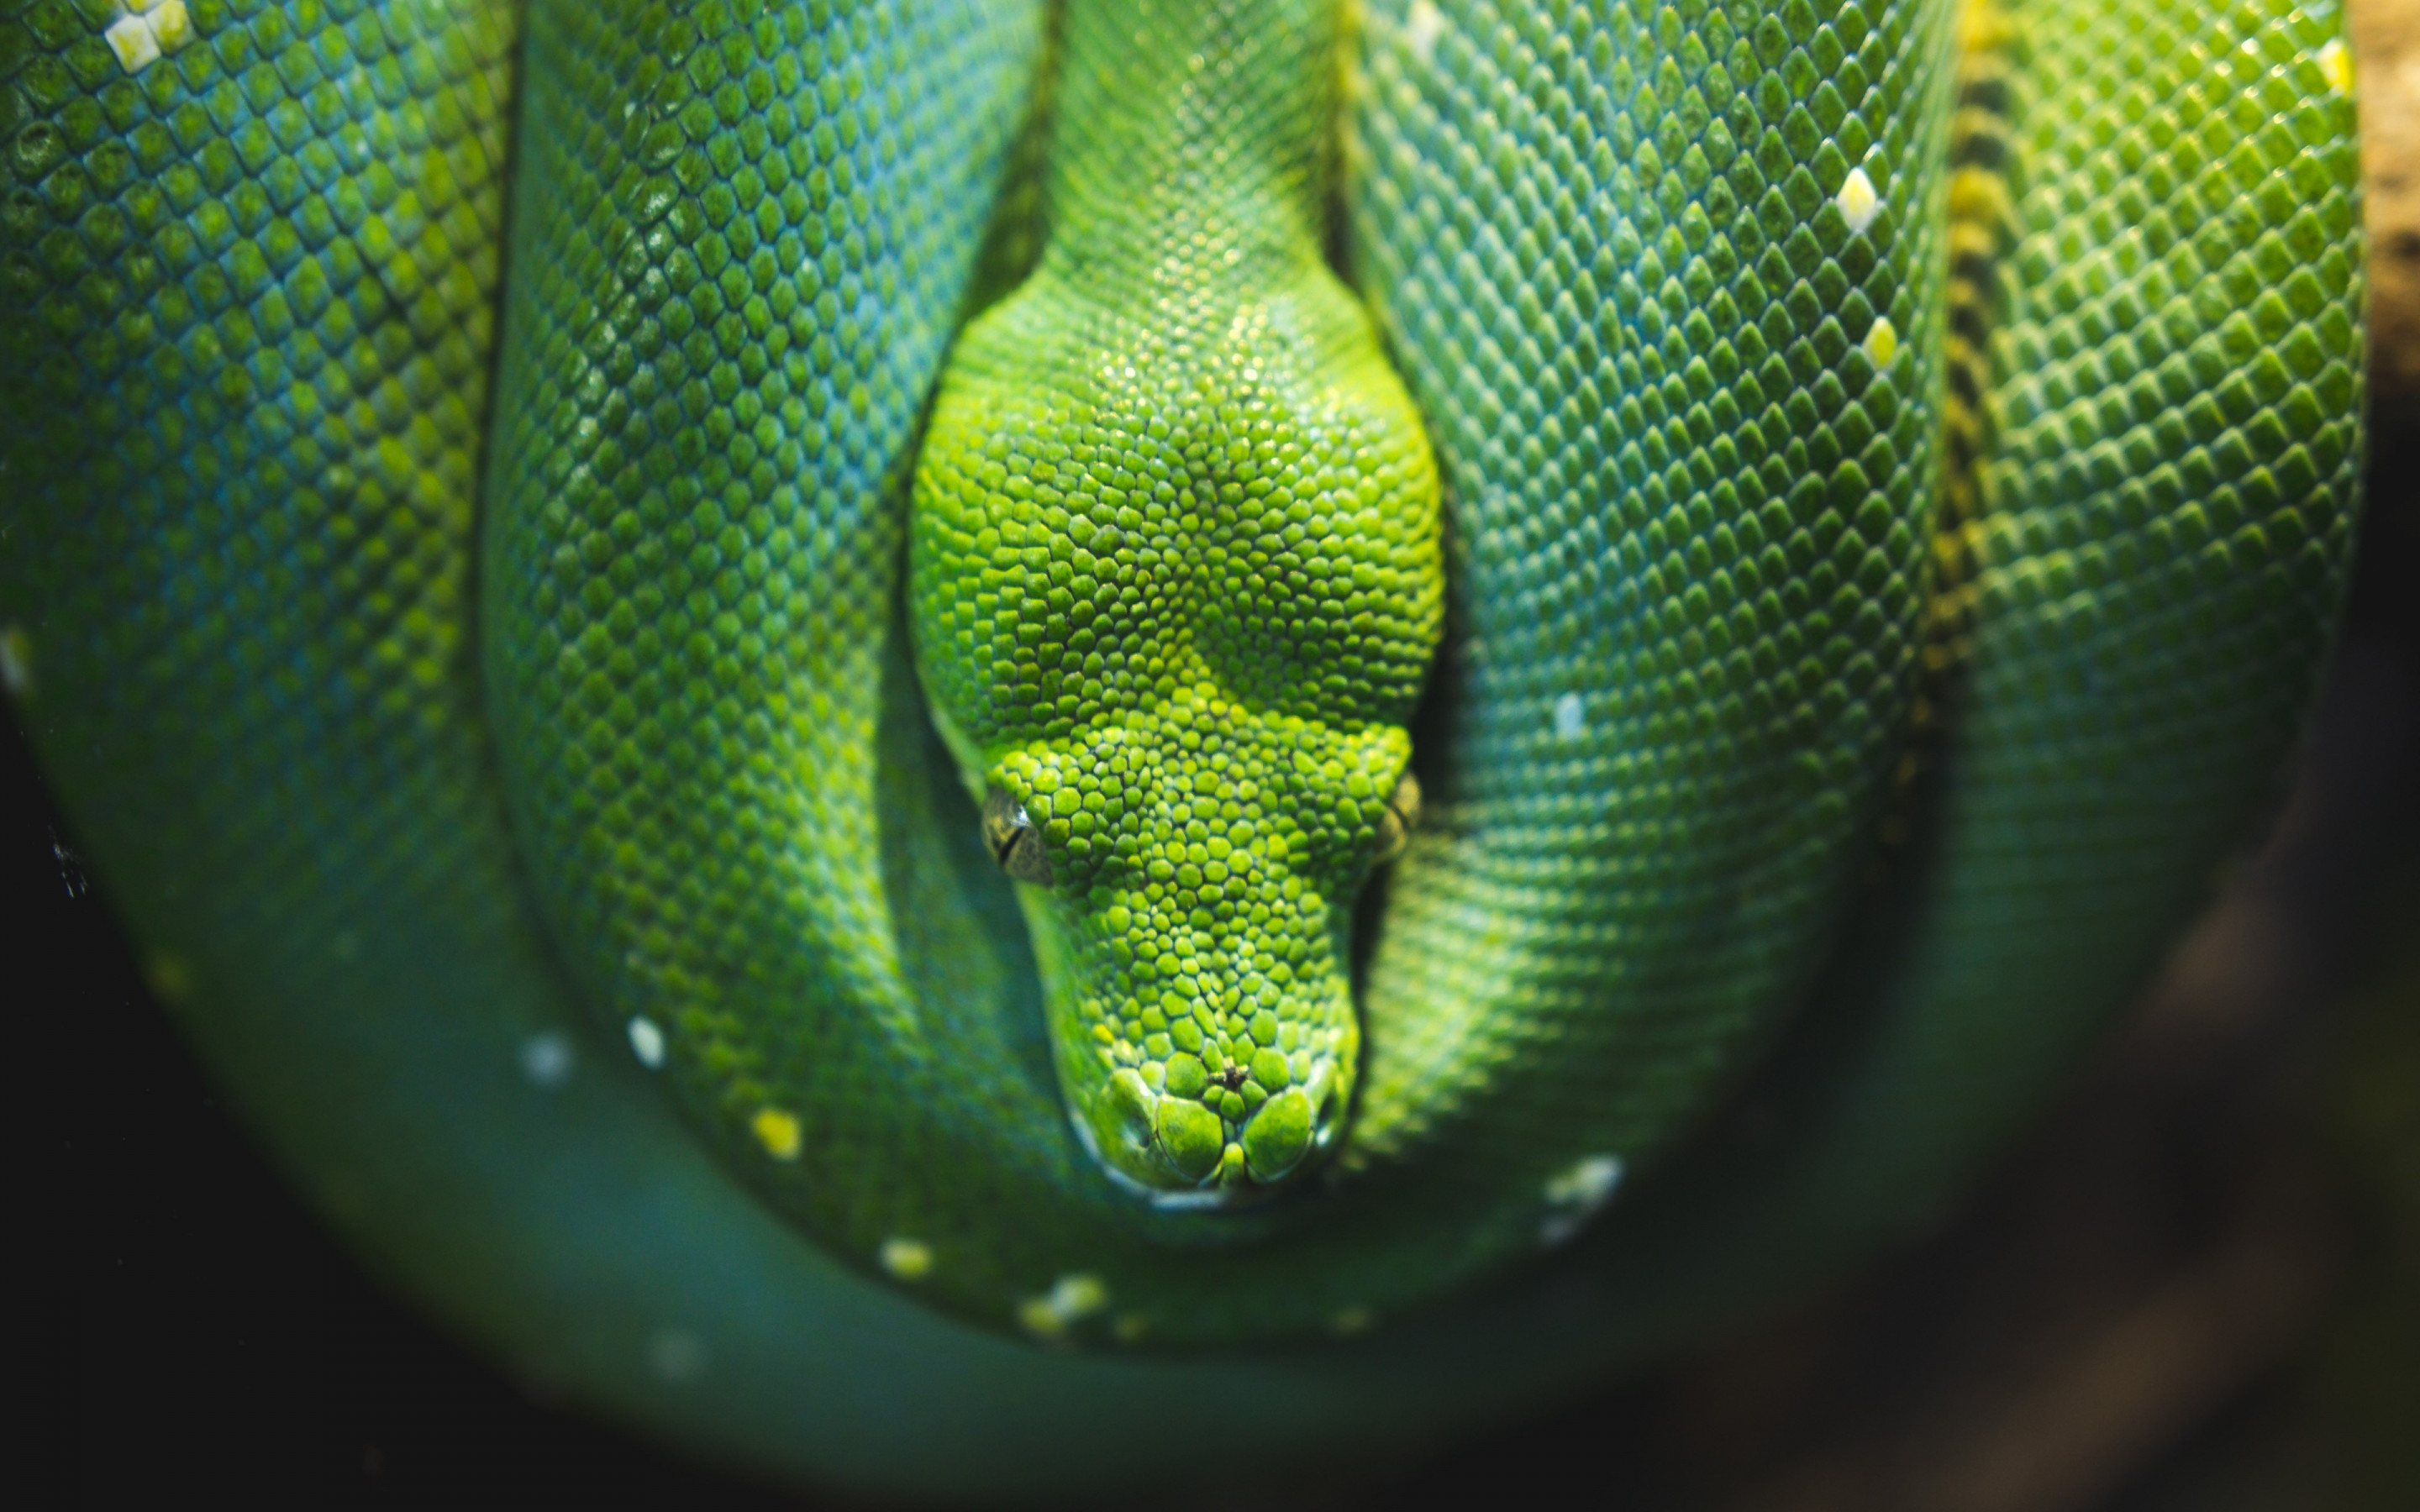 Green Tree snake python wallpaper 2880x1800